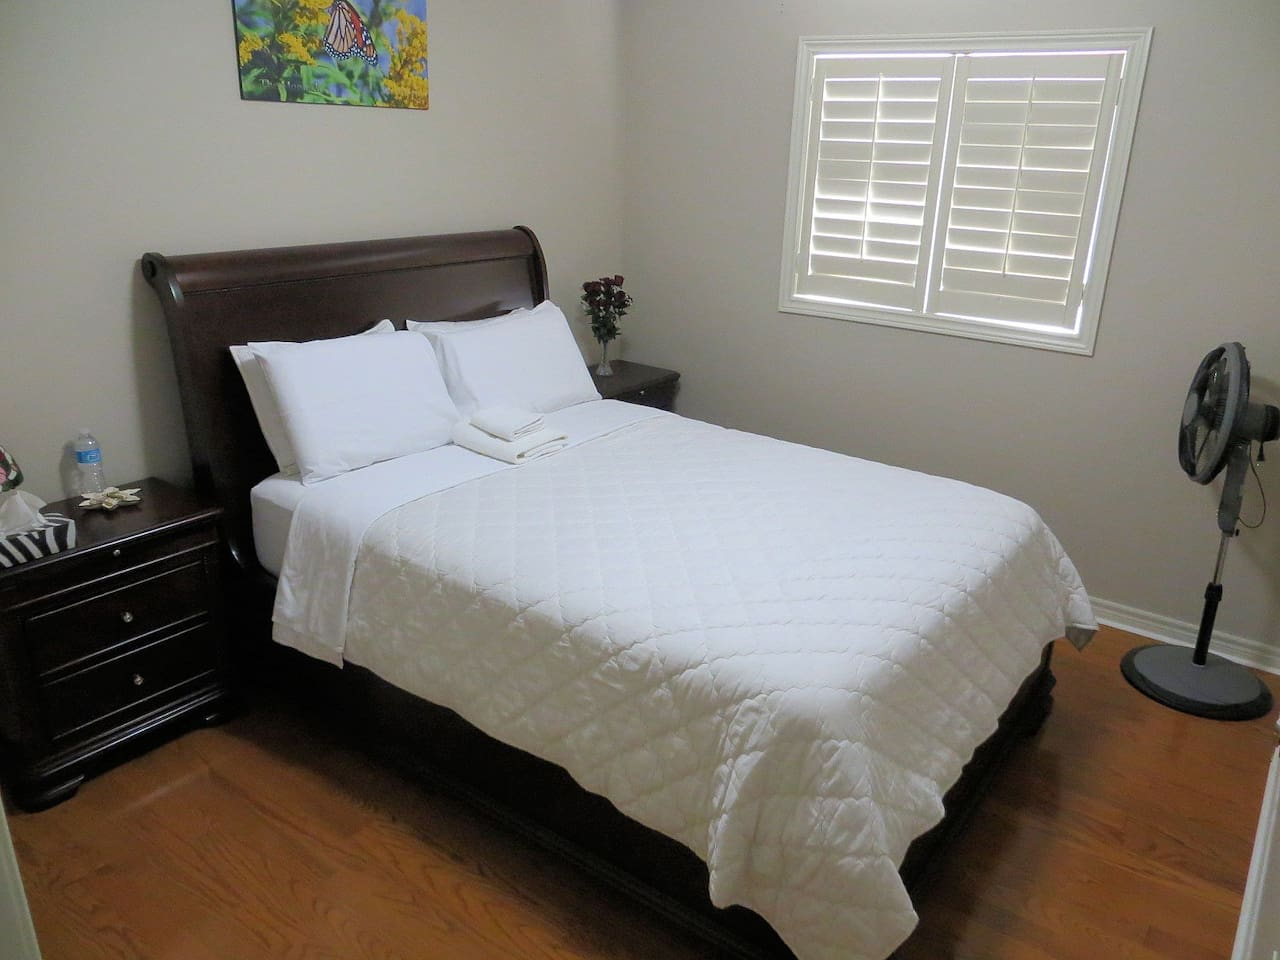 Very clean & comfortable room for your relaxation.